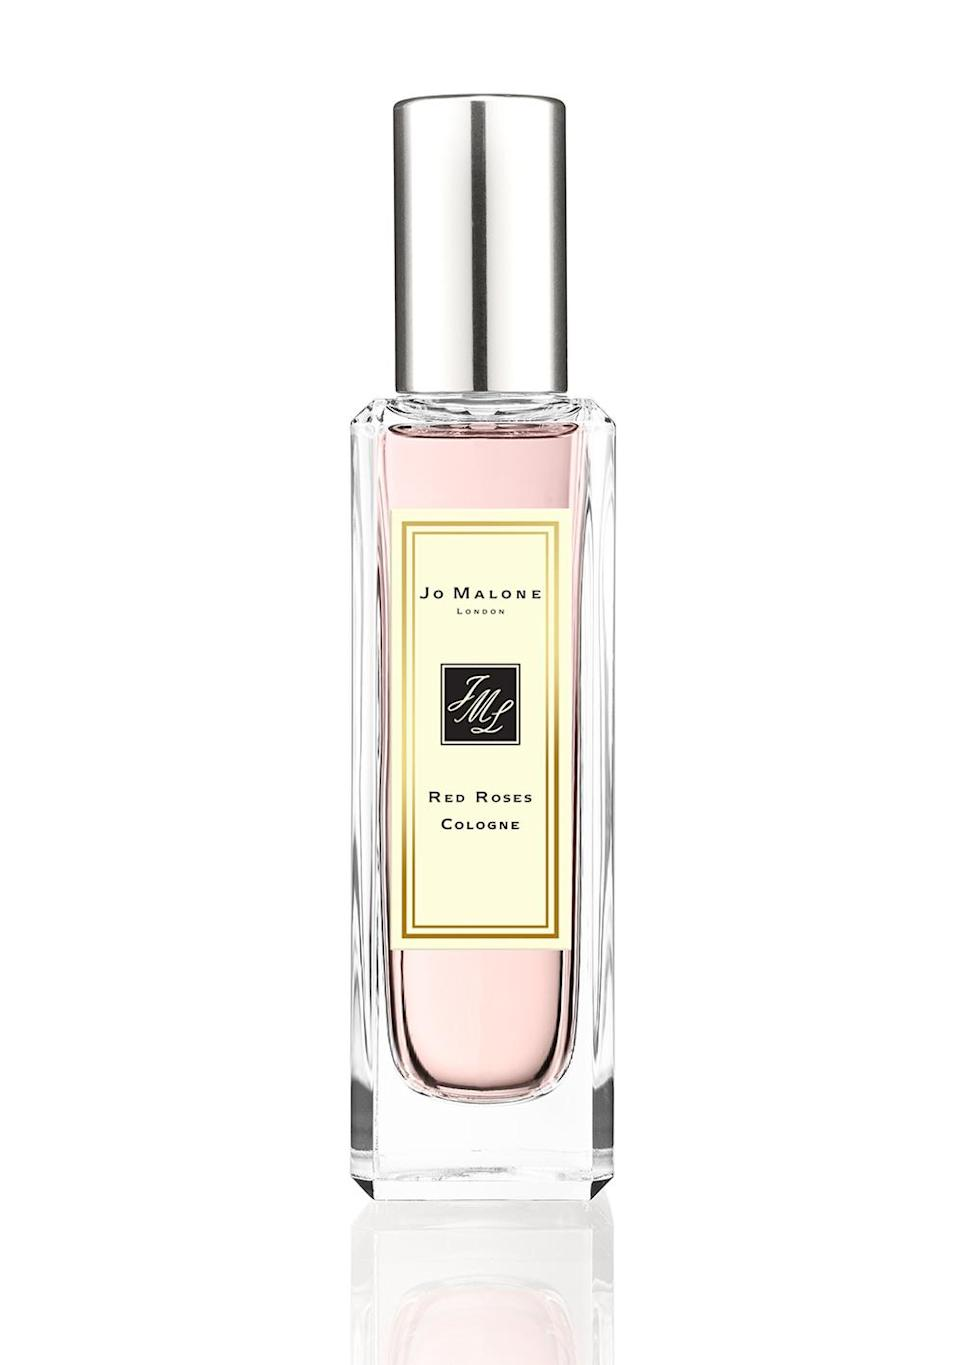 """<p>""""I am a <em>huge</em> fan of roses. My birthday's coming up and I have instructed people: If you're going to give me something, either give me a gift certificate to the Beverly Hot Springs or Jo Malone London's Red Roses lotion or cologne. When I am wearing it, people always say, 'You smell so good.' They've also got these great candles — they make the little small ones that you can travel when you're on the road. It's just my favorite [collection].""""</p> <p><strong>Buy It!</strong> Jo Malone London Red Roses Cologne, $72 for 30ml; <a href=""""https://click.linksynergy.com/deeplink?id=93xLBvPhAeE&mid=39512&murl=https%3A%2F%2Fwww.jomalone.com%2Fproduct%2F25778%2F10066%2Fnew-products%2Fred-roses-cologne%3Fsize%3D30ml&u1=PEOVivicaAFoxsStyleandBeautyEssentialsjfields1271StyGal12812182202107I"""" rel=""""sponsored noopener"""" target=""""_blank"""" data-ylk=""""slk:jomalone.com"""" class=""""link rapid-noclick-resp"""">jomalone.com</a></p>"""